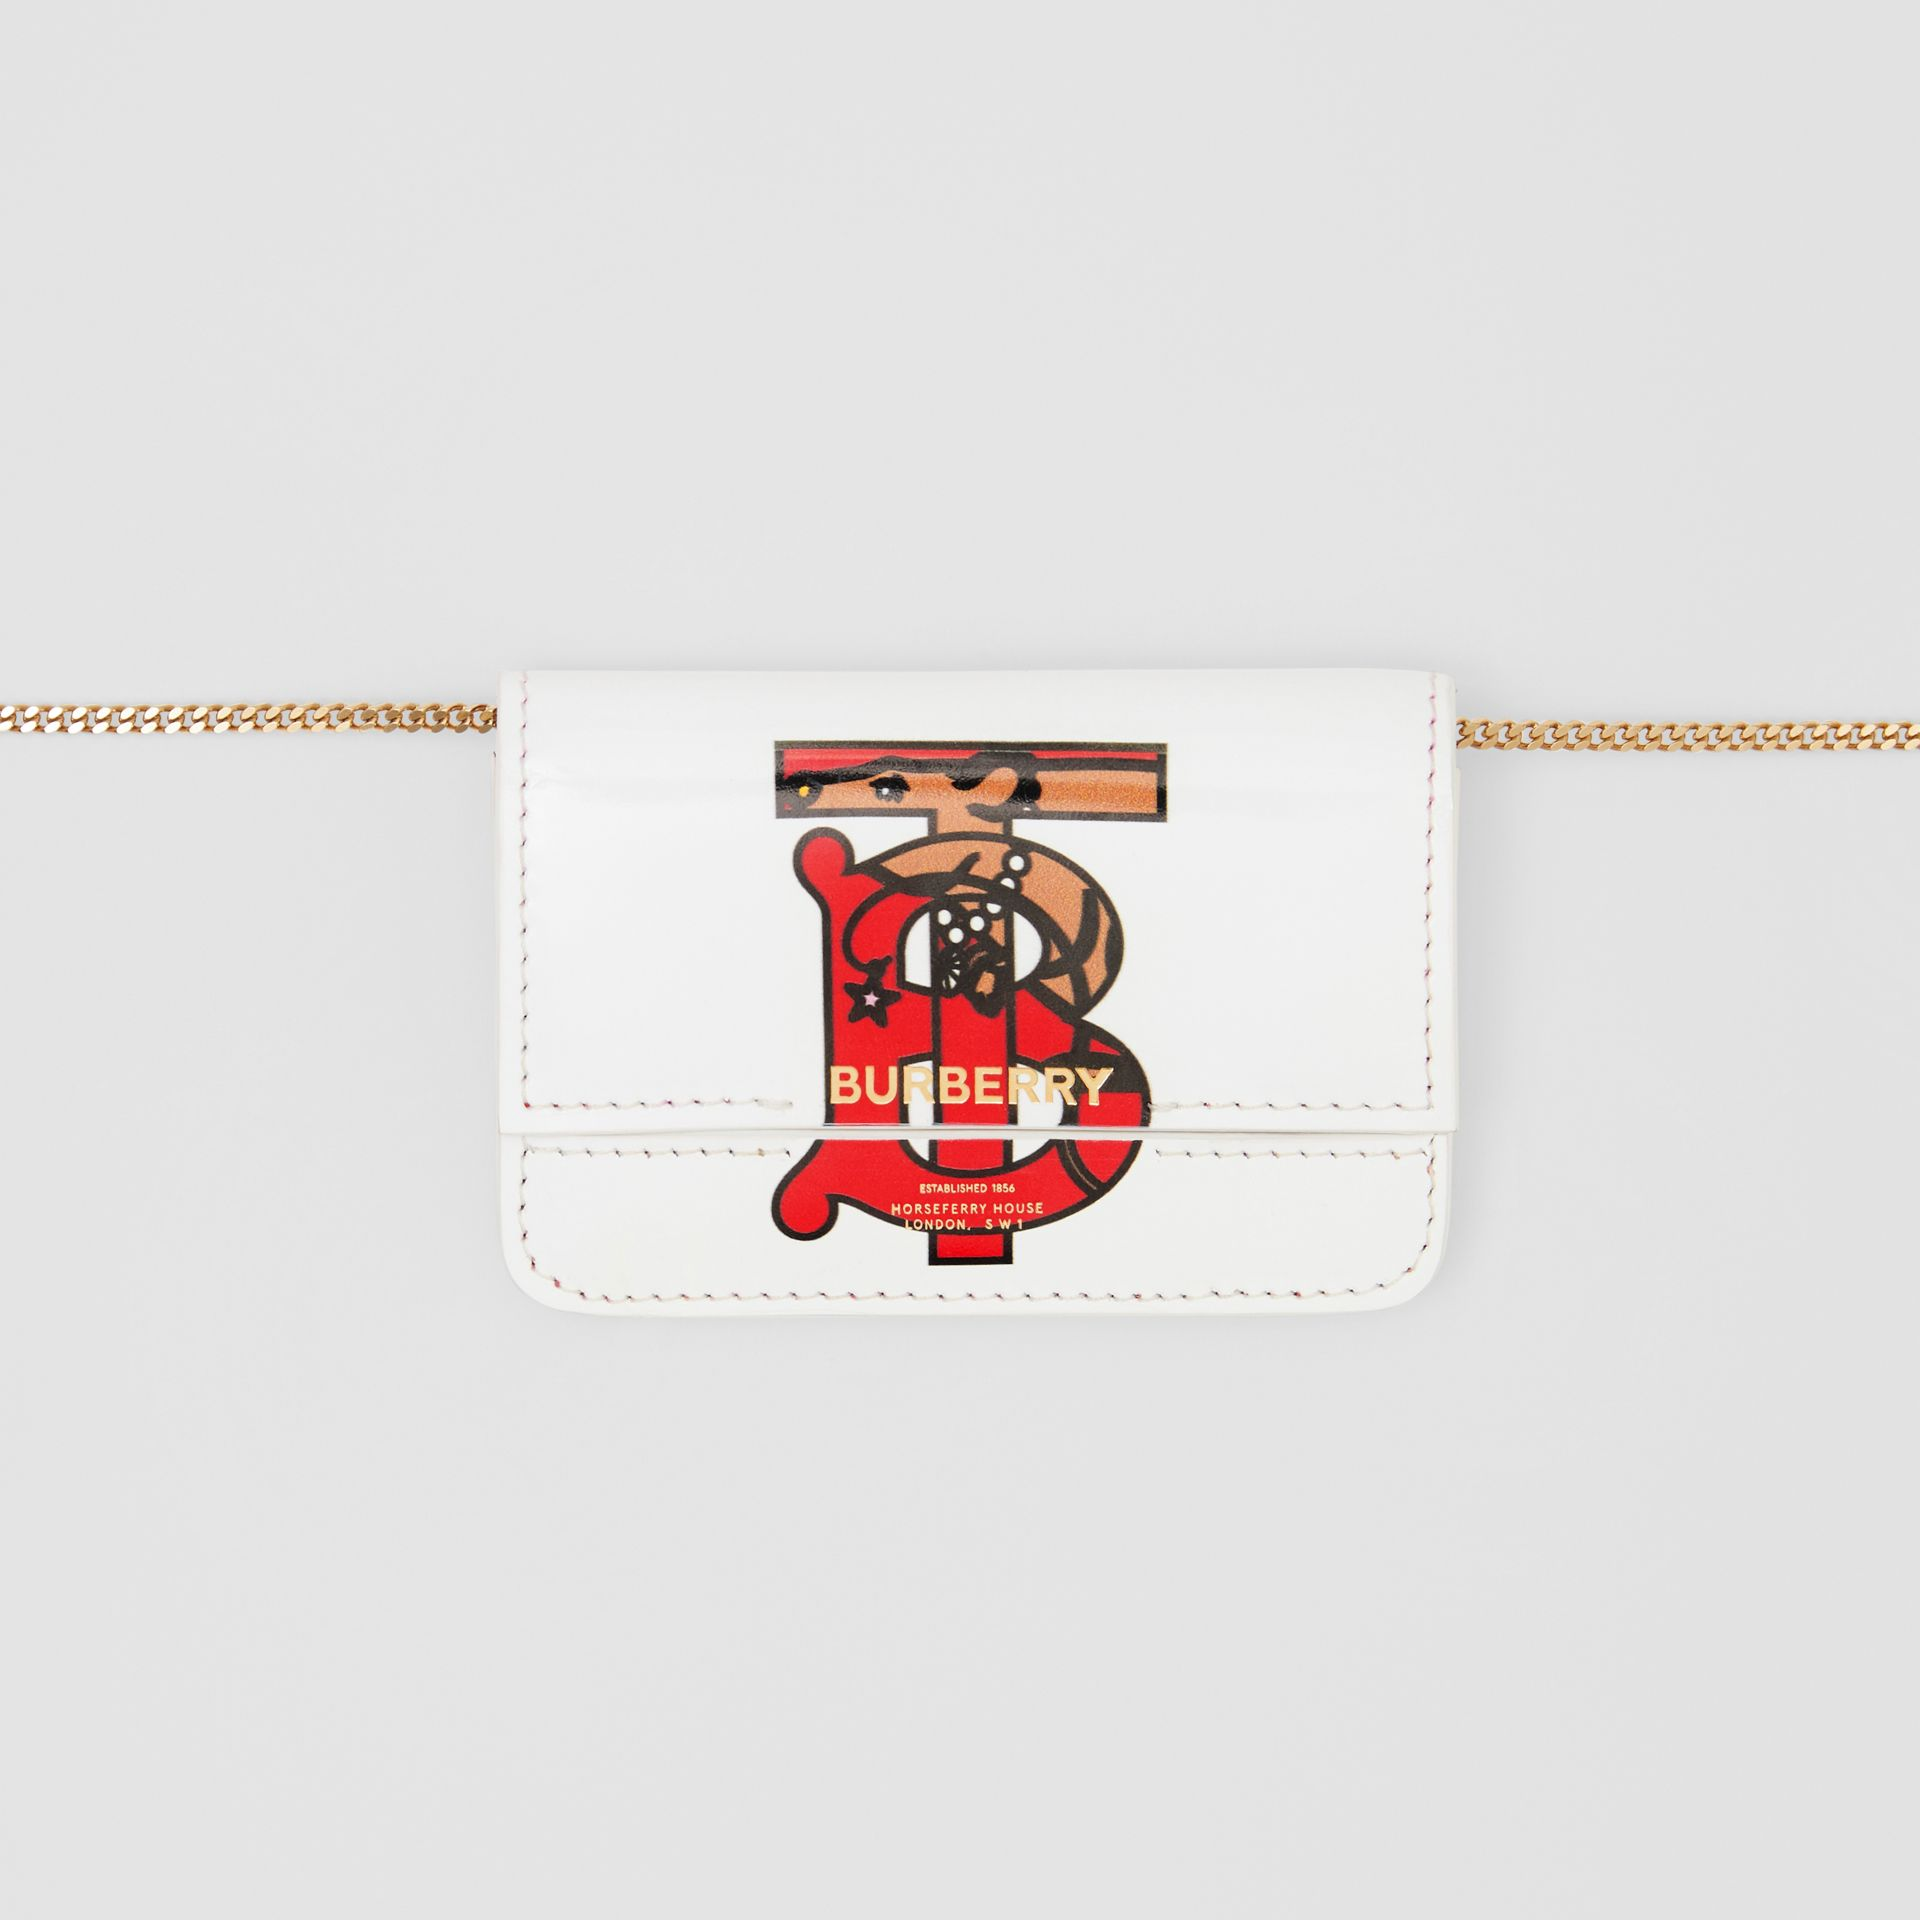 Porte-cartes en cuir Monogram avec sangle en chaîne (Blanc) | Burberry - photo de la galerie 10